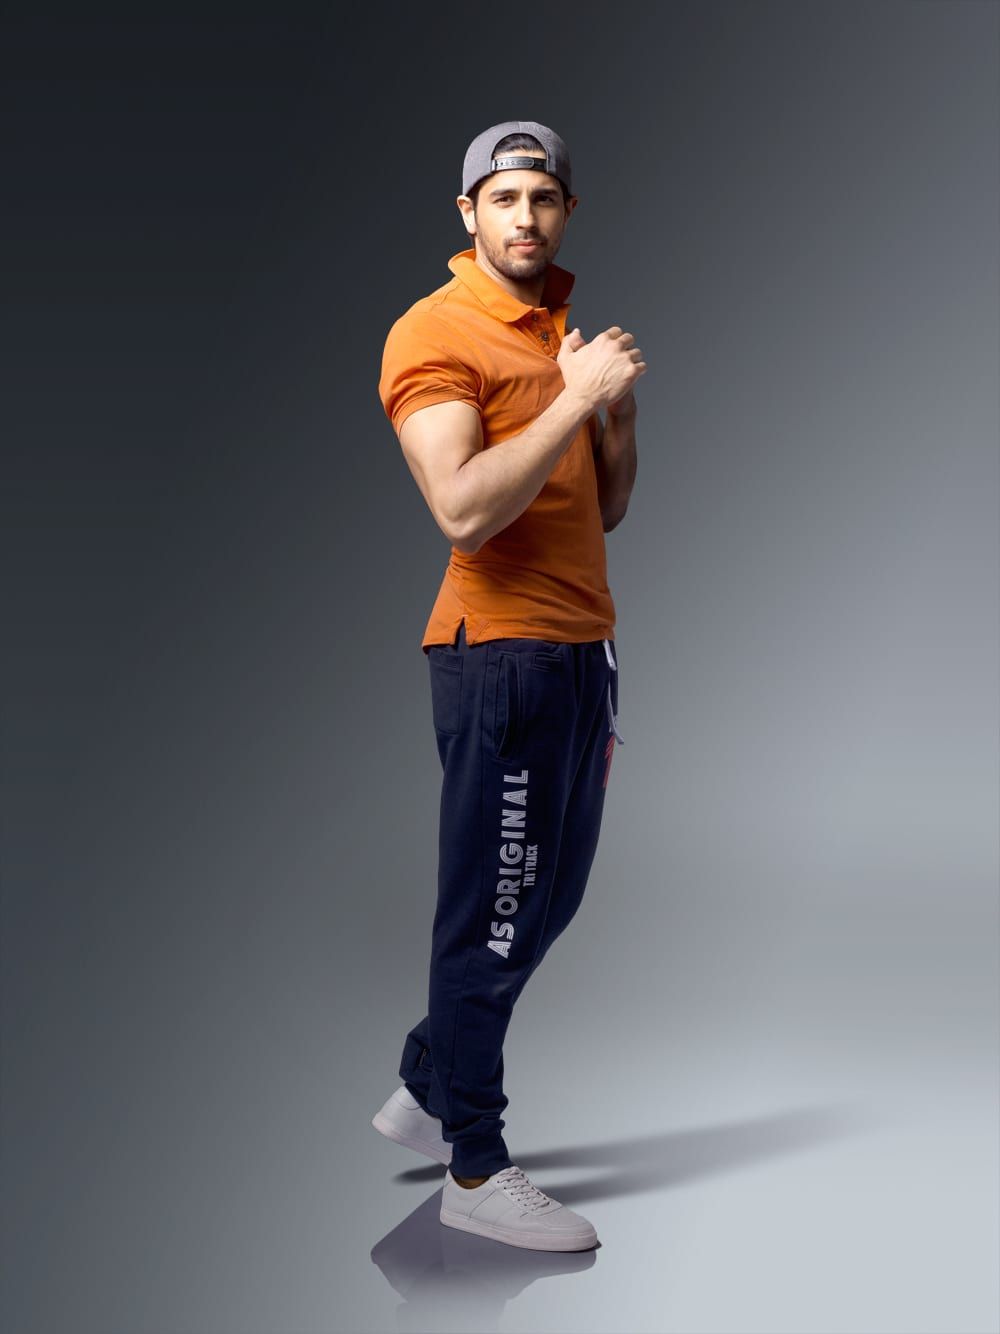 Sidharth's New sports look by American swan